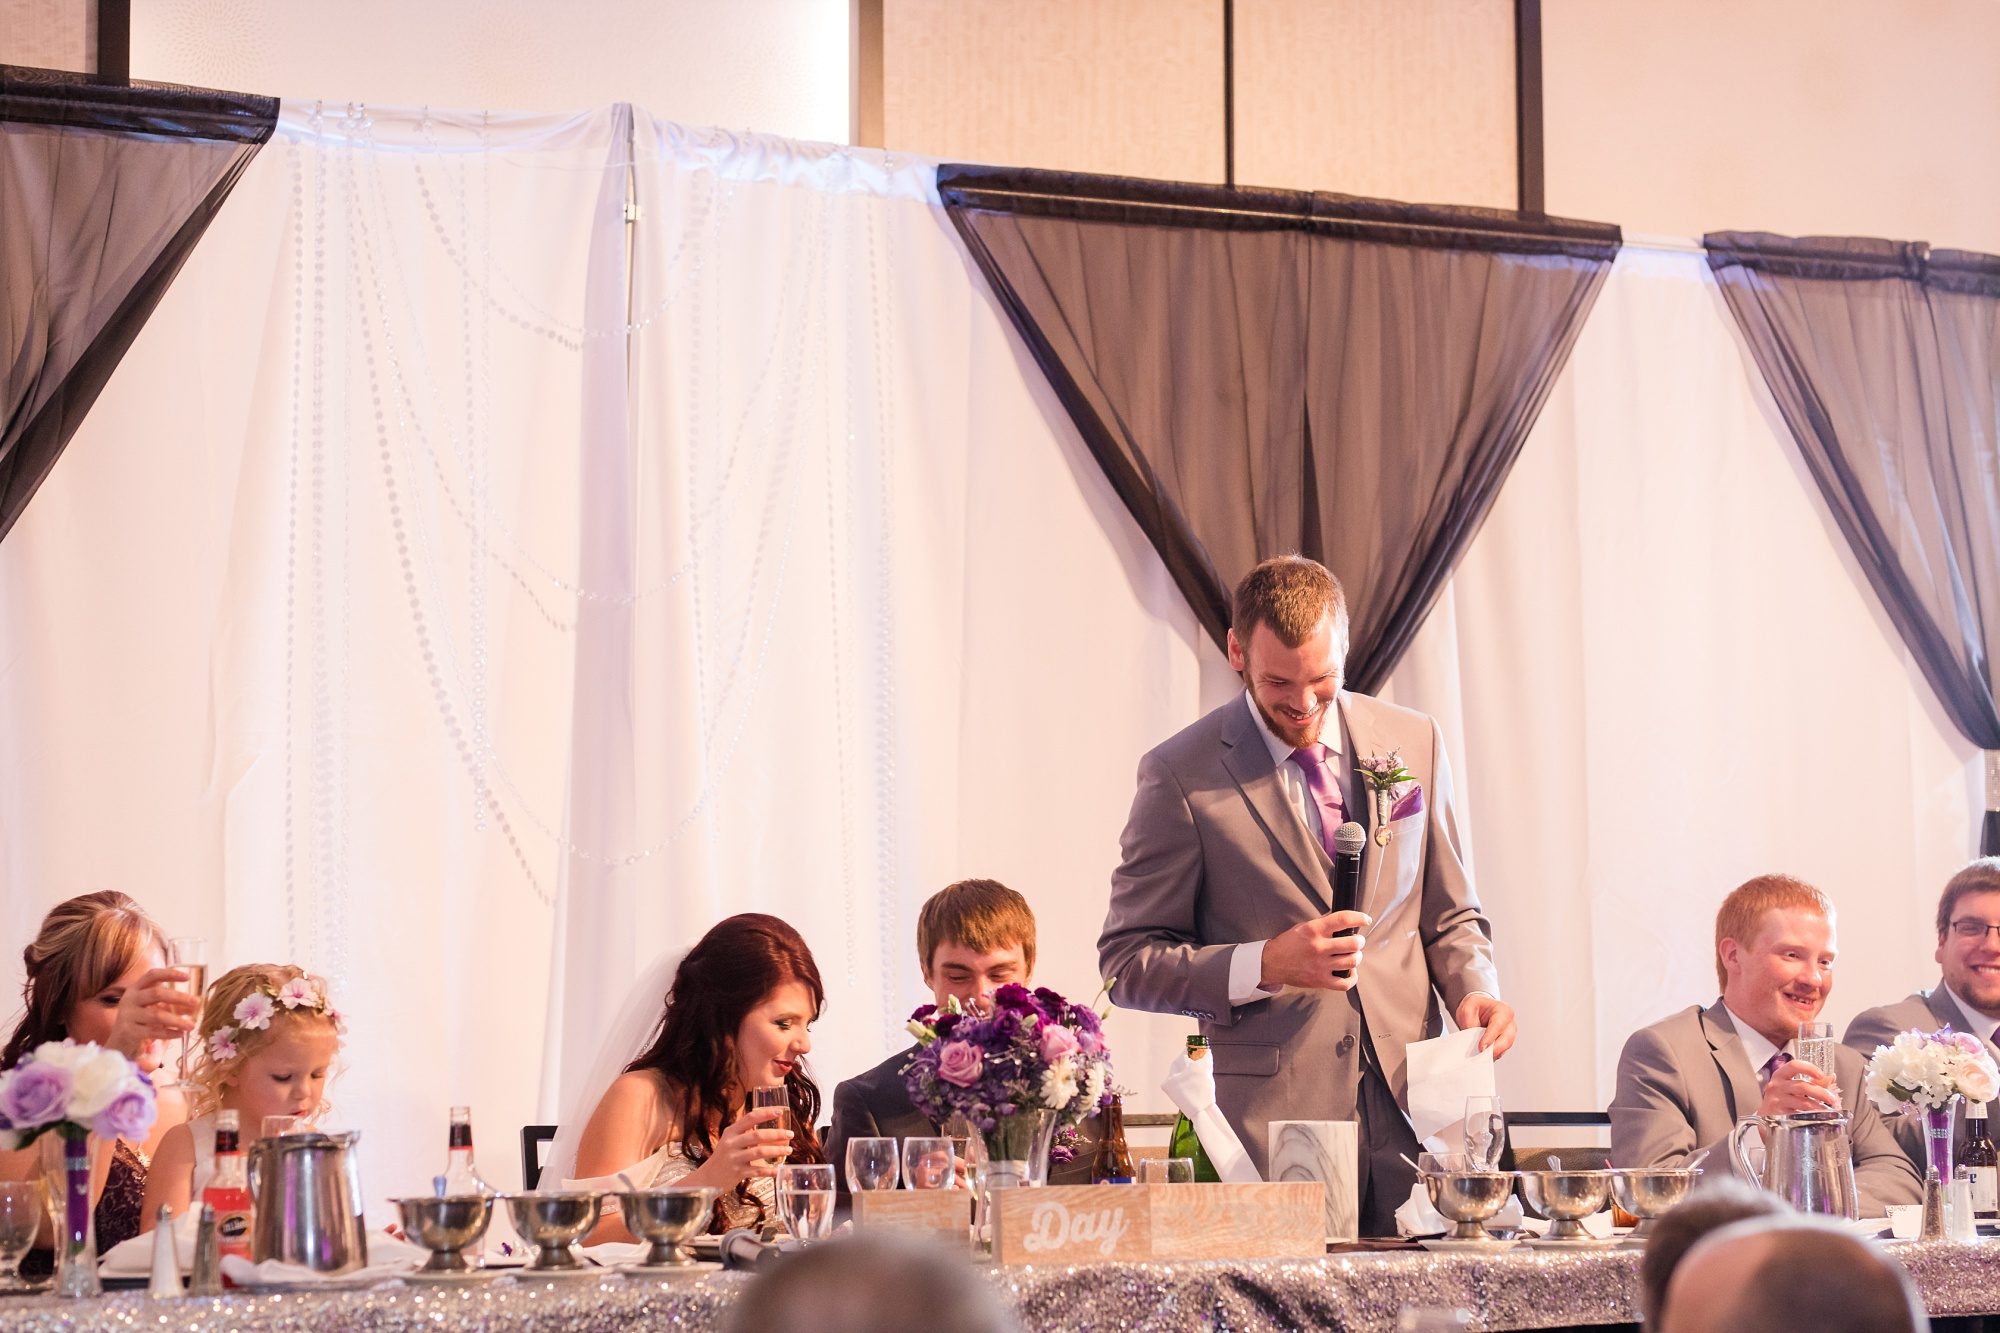 AmberLangerudPhotography_Downtown Fargo, ND Ramada Wedding_3699.jpg